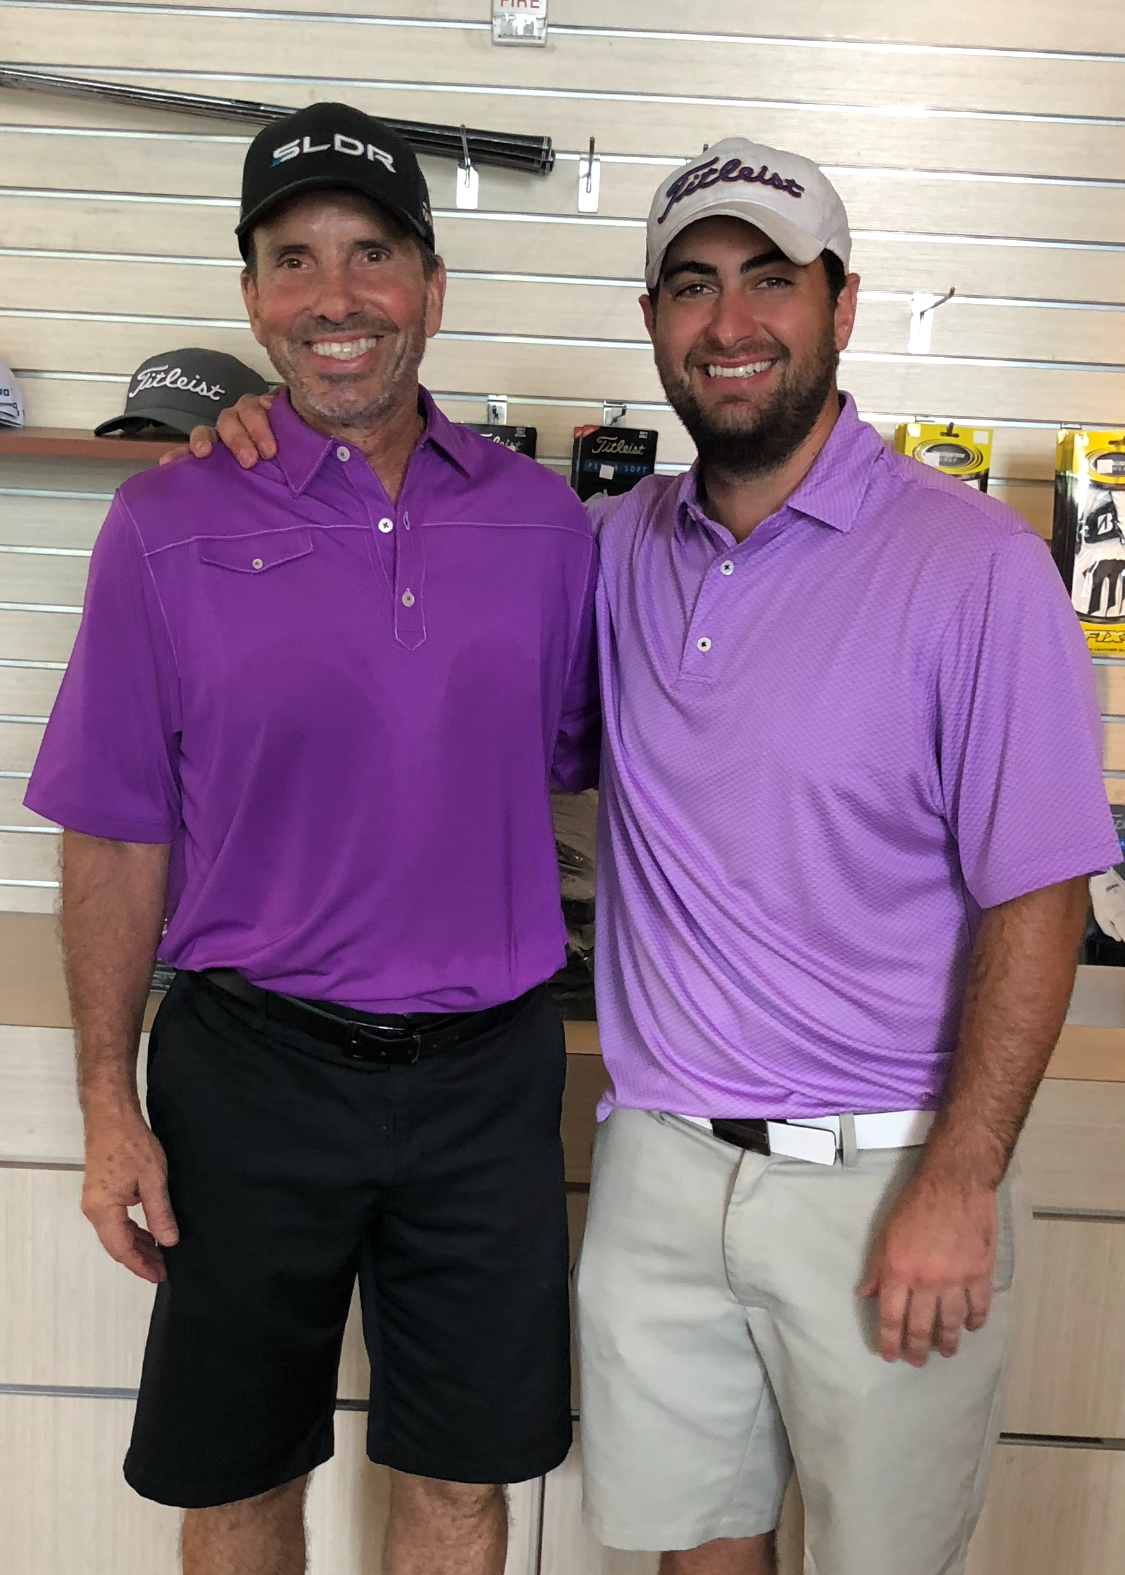 2018 Dumas Tin Cup Tour July 7-8 – Tournament Results